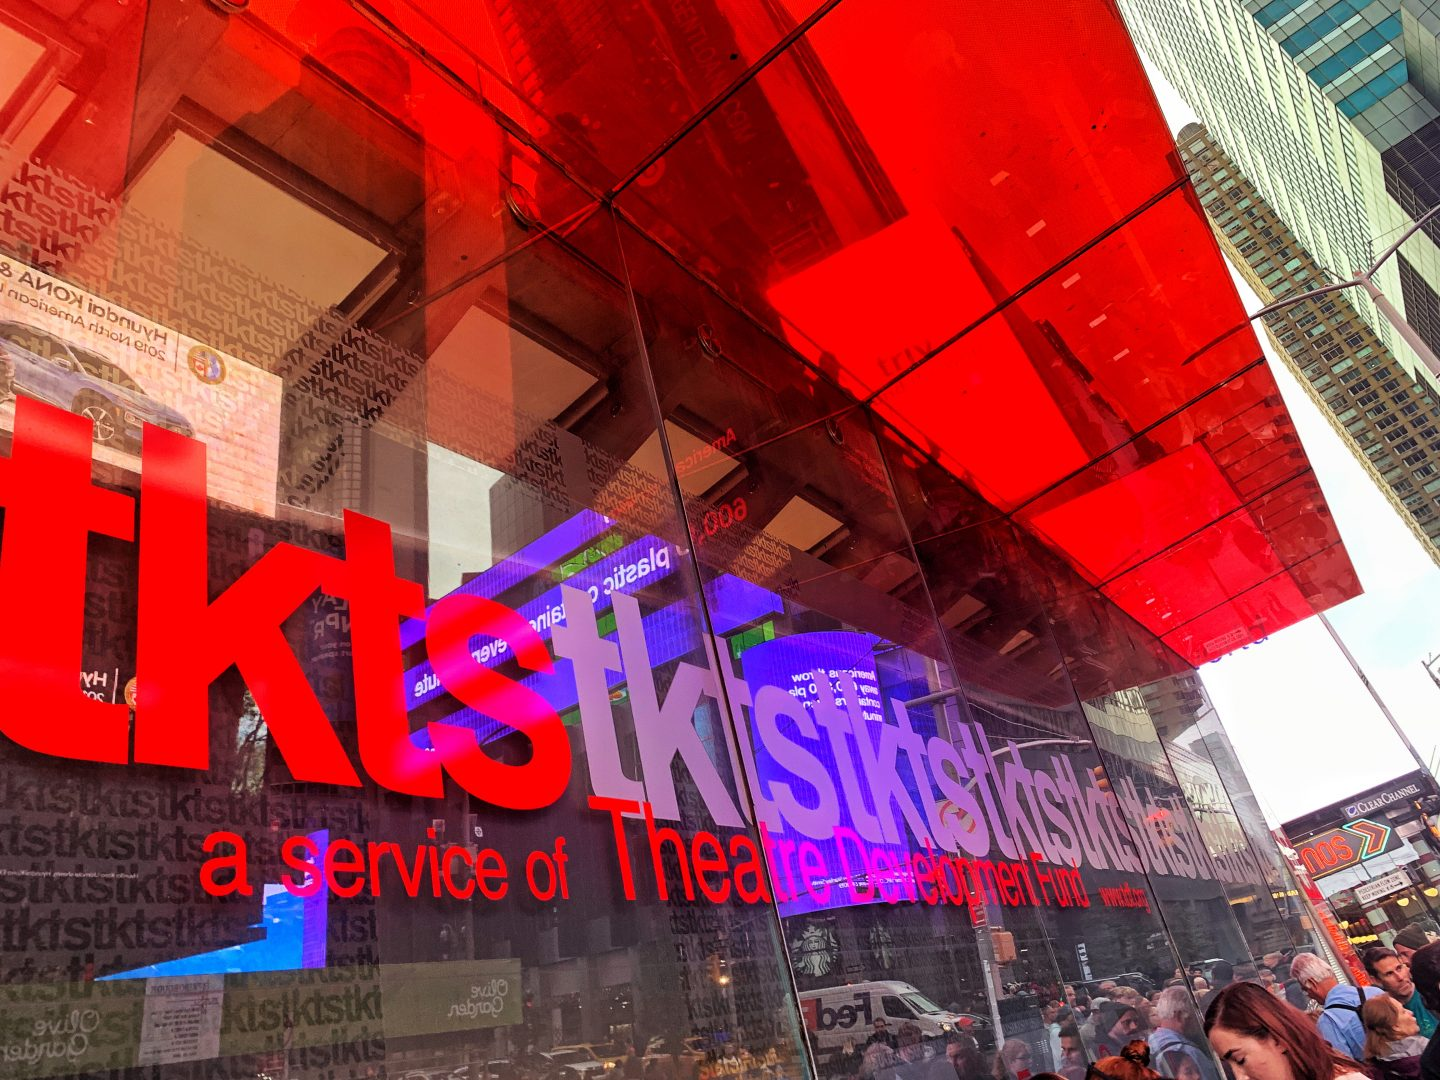 Tkts board in Times Square